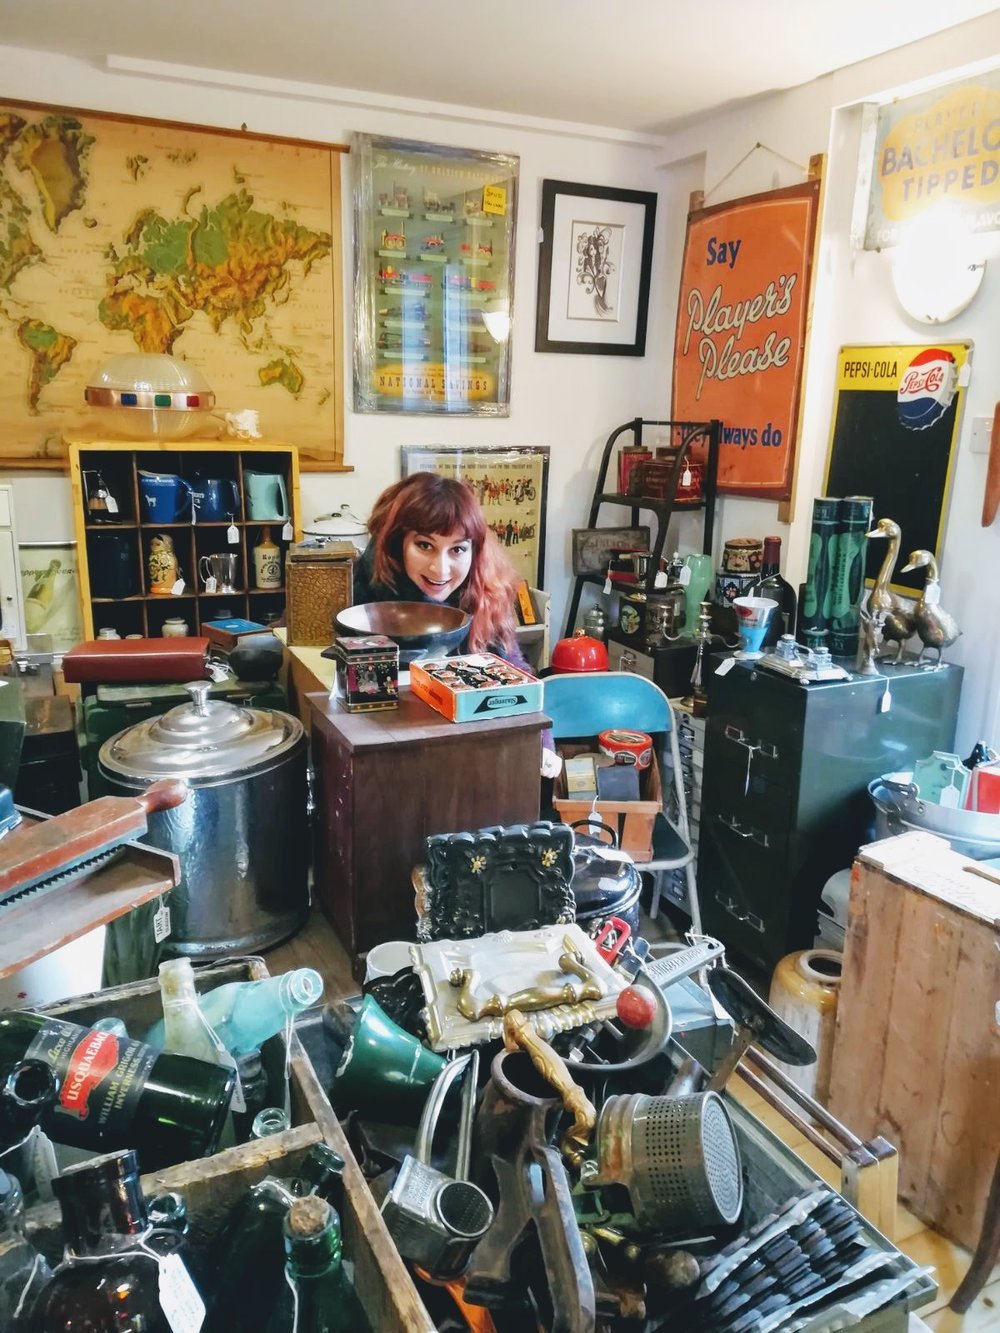 This is me surrounded by clutter